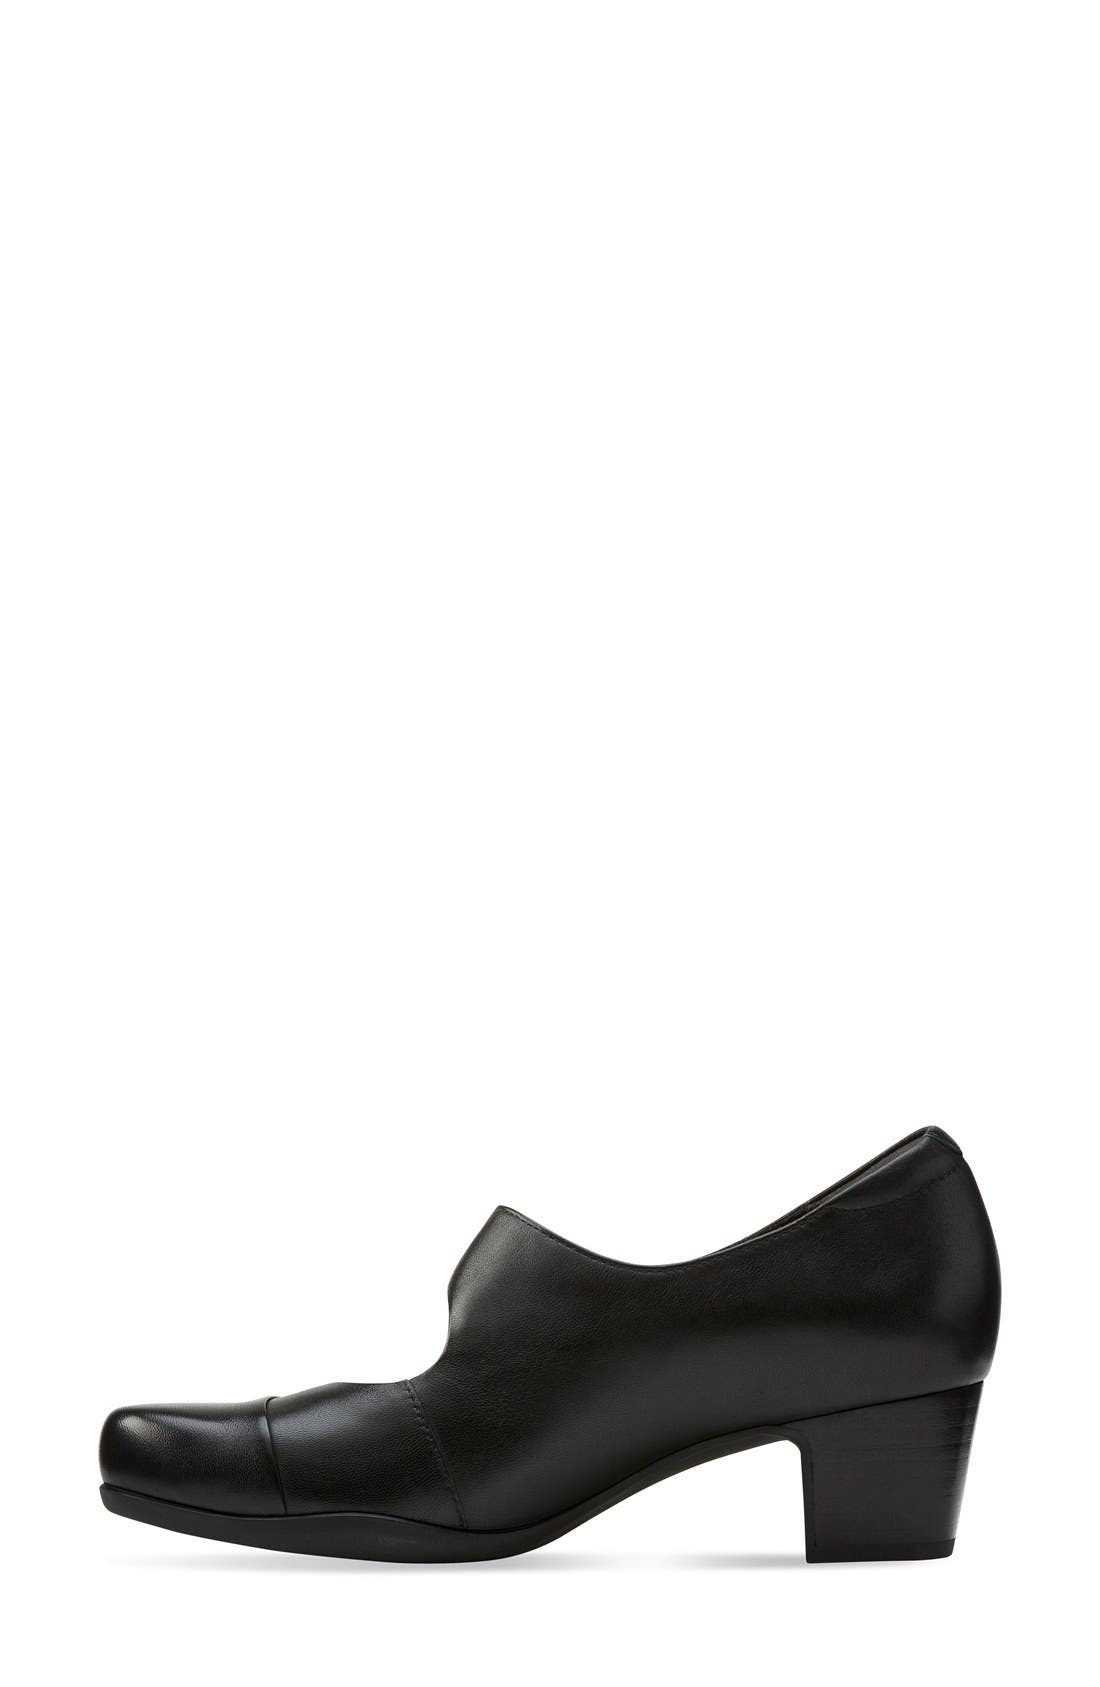 'Rosalyn Wren' Mary Jane Pump,                             Alternate thumbnail 2, color,                             Black Leather